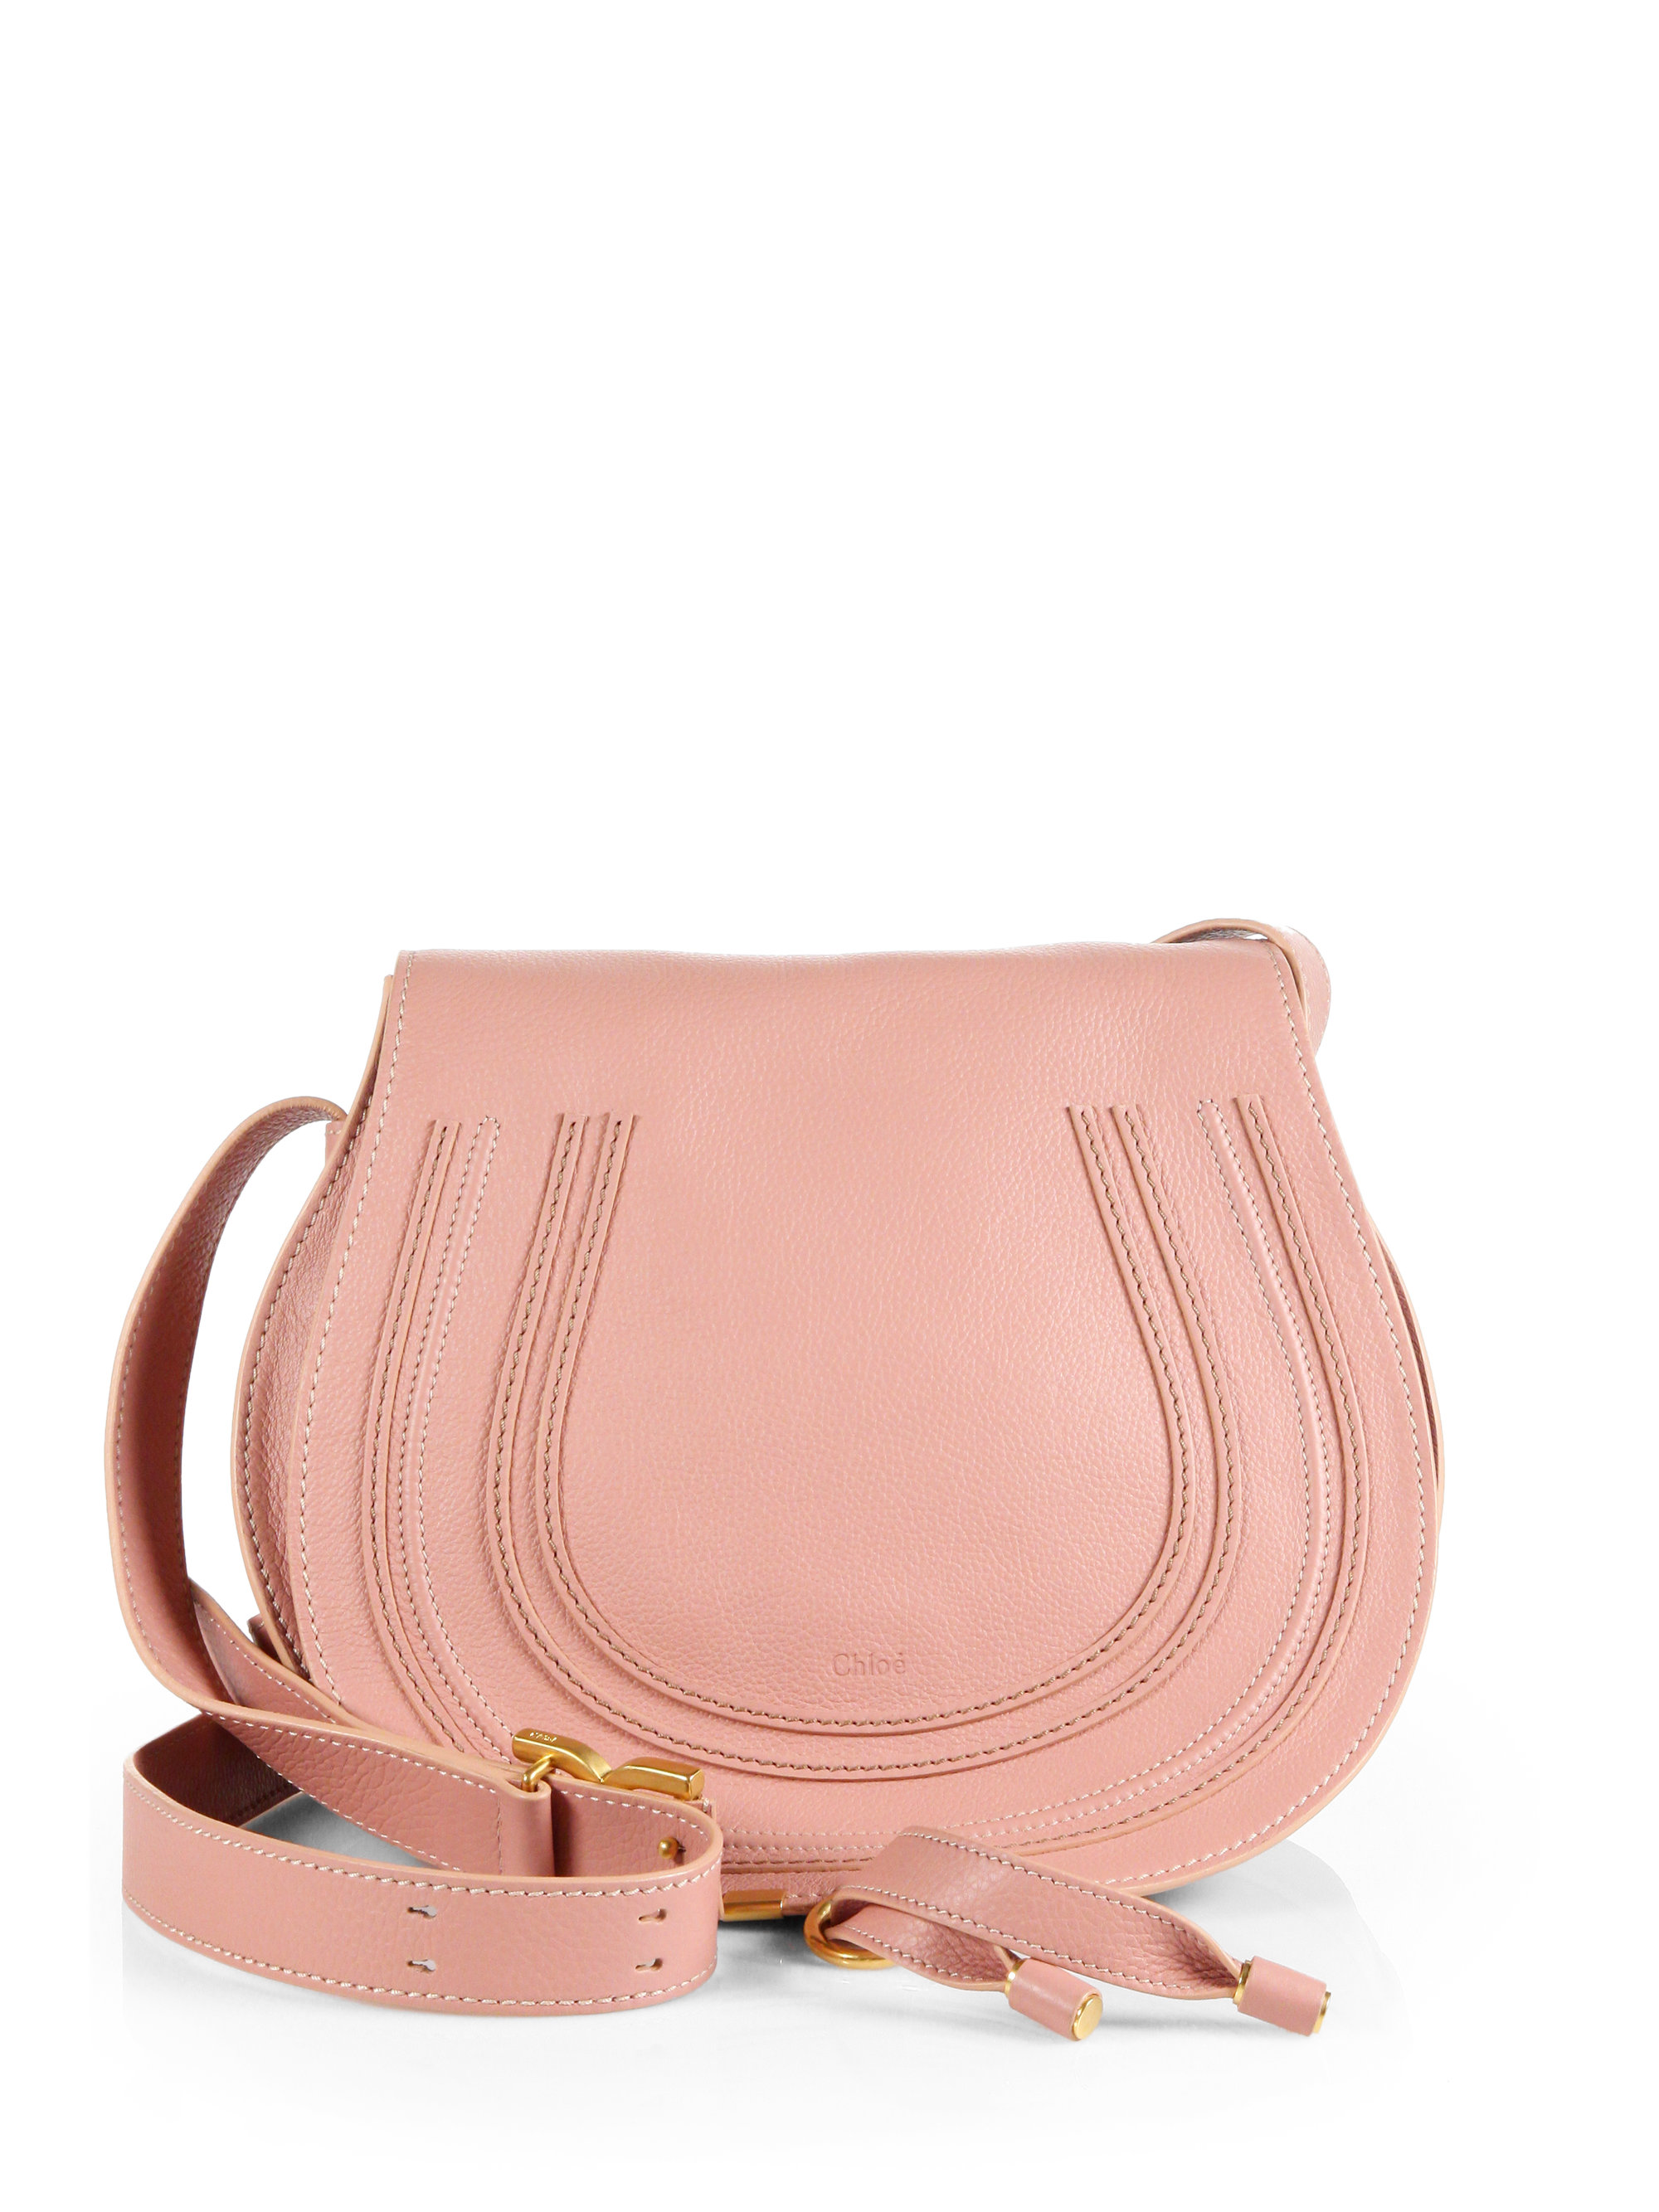 234c5917f Gallery. Previously sold at: Saks Fifth Avenue · Women's Saddle Bags  Women's Chloé Marcie Bags